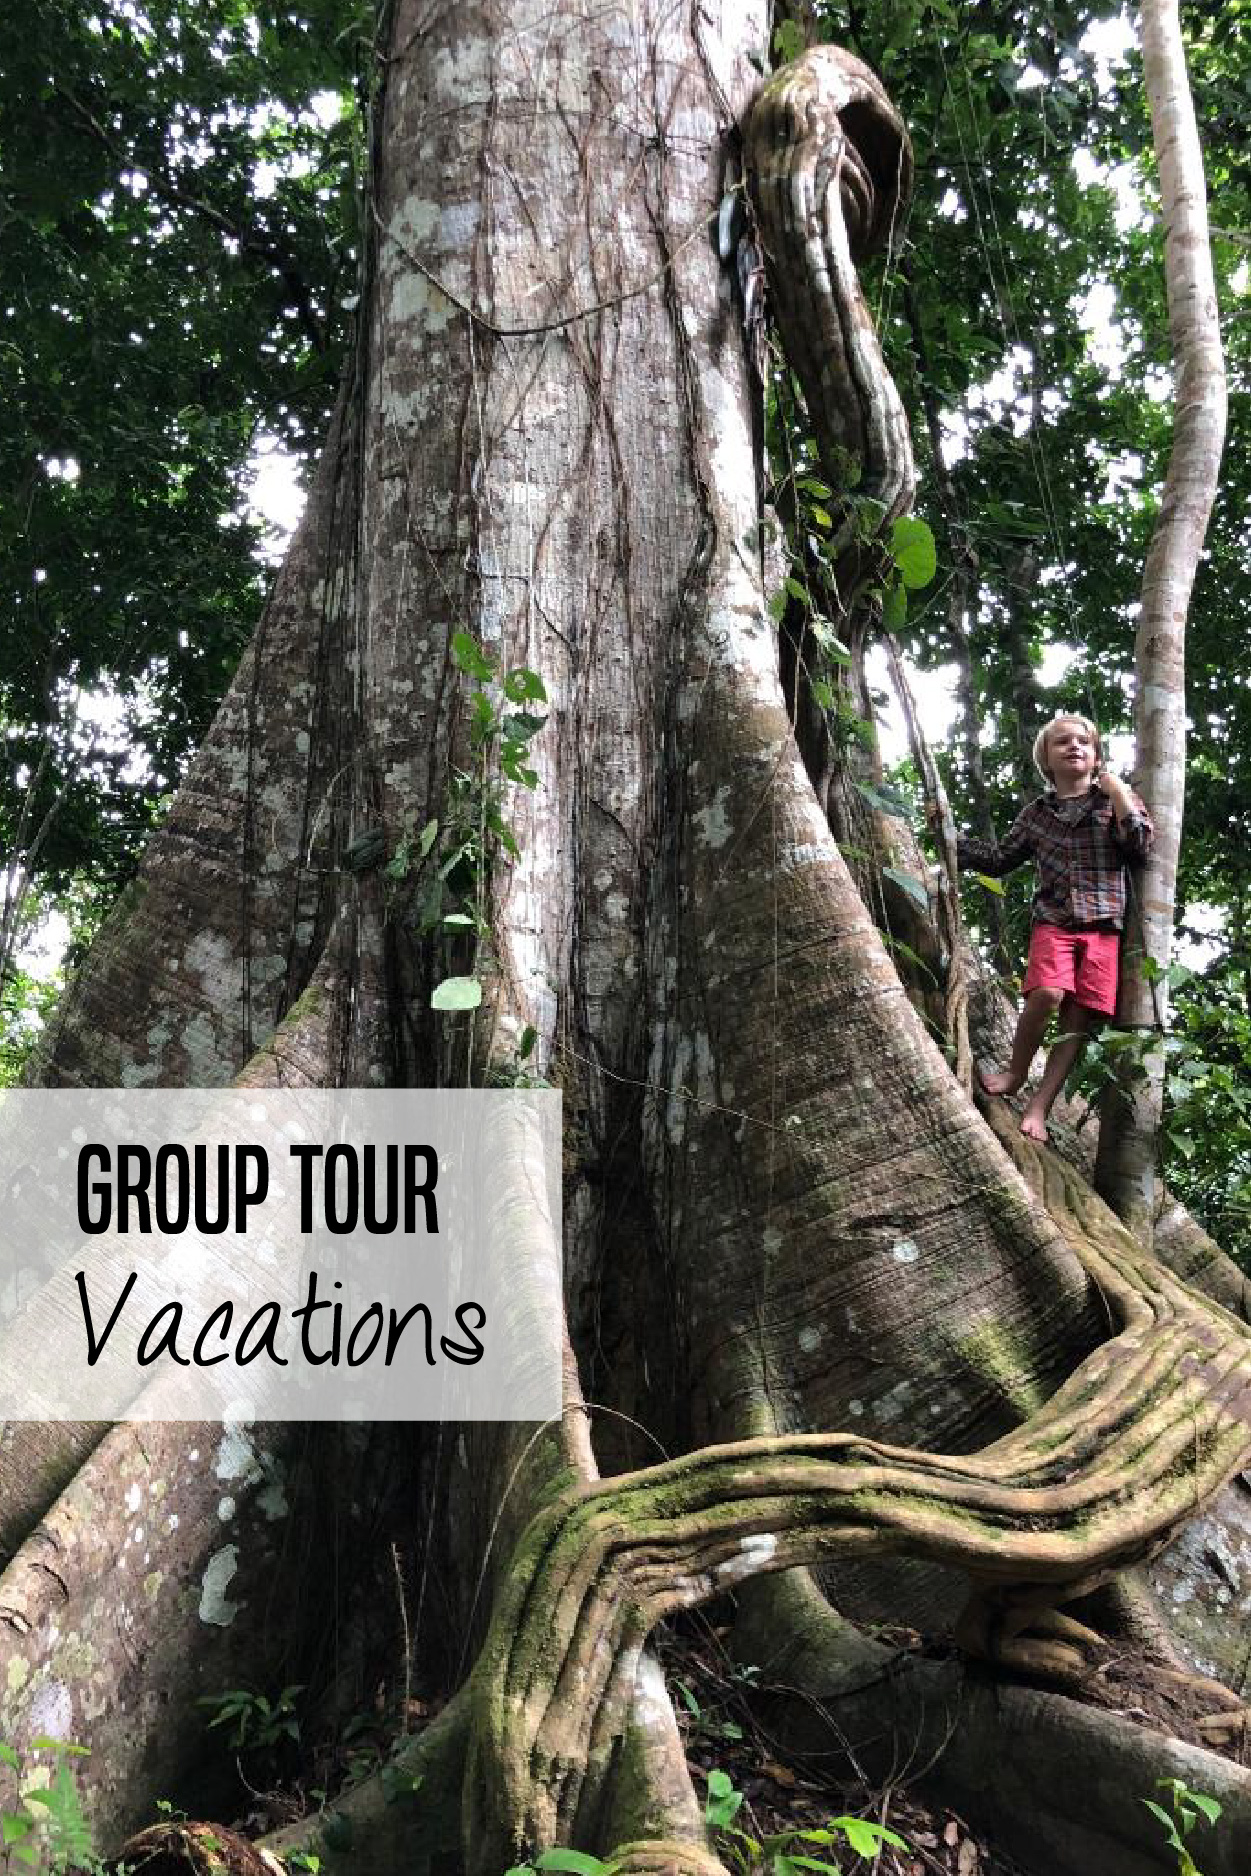 The pros and cons of taking group tour vacations with kids. Learn what group trips are like and if they are a good fit for you and your kids. #familytravel #grouptravel